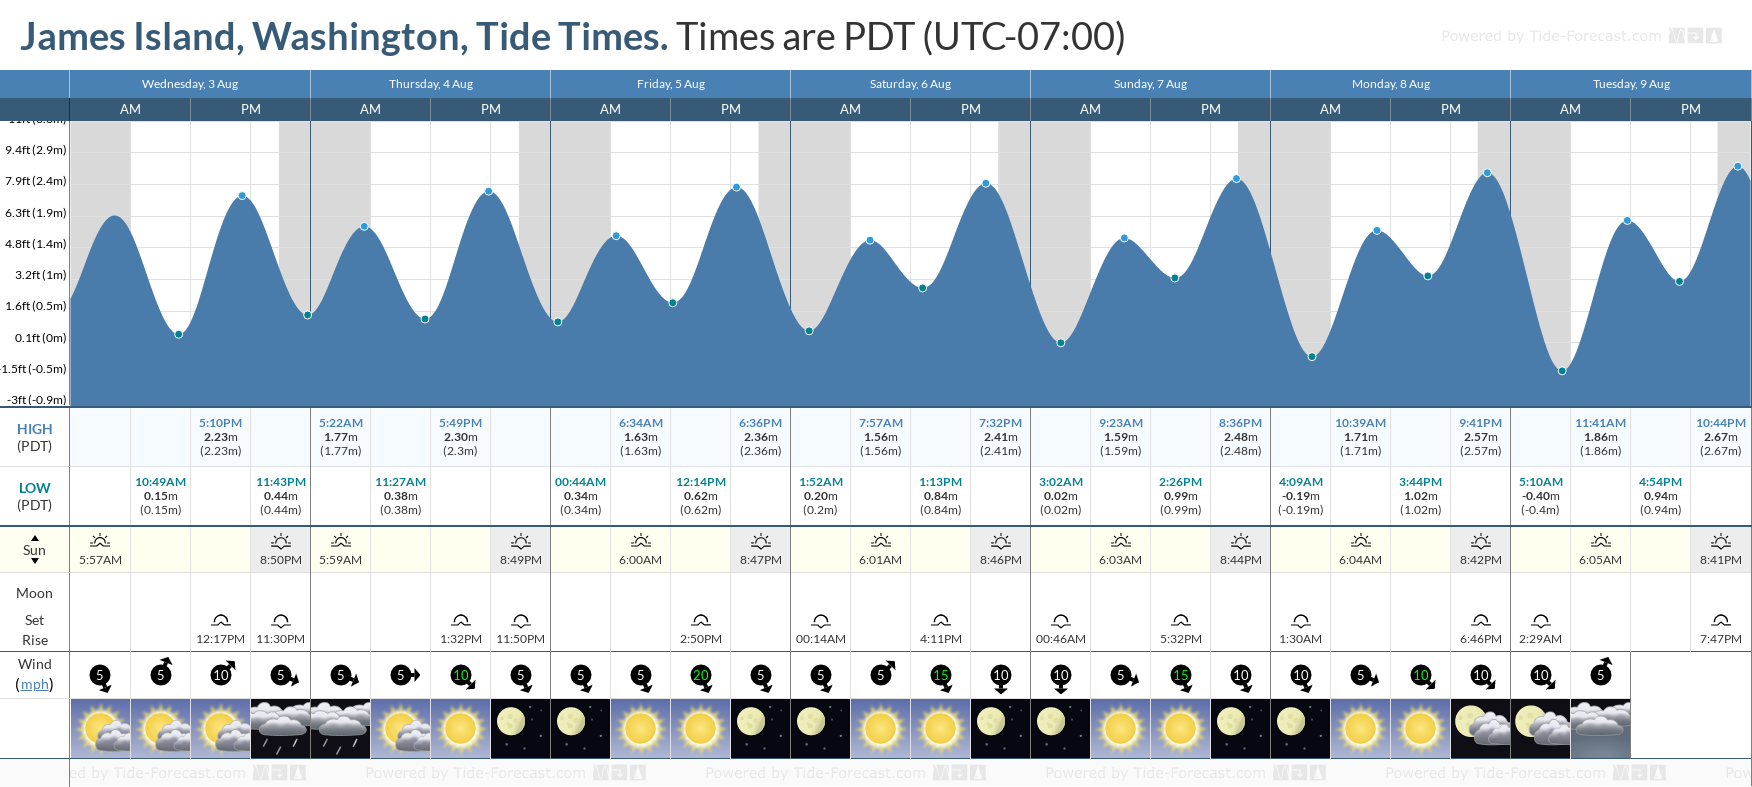 James Island, Washington Tide Chart including high and low tide tide times for the next 7 days